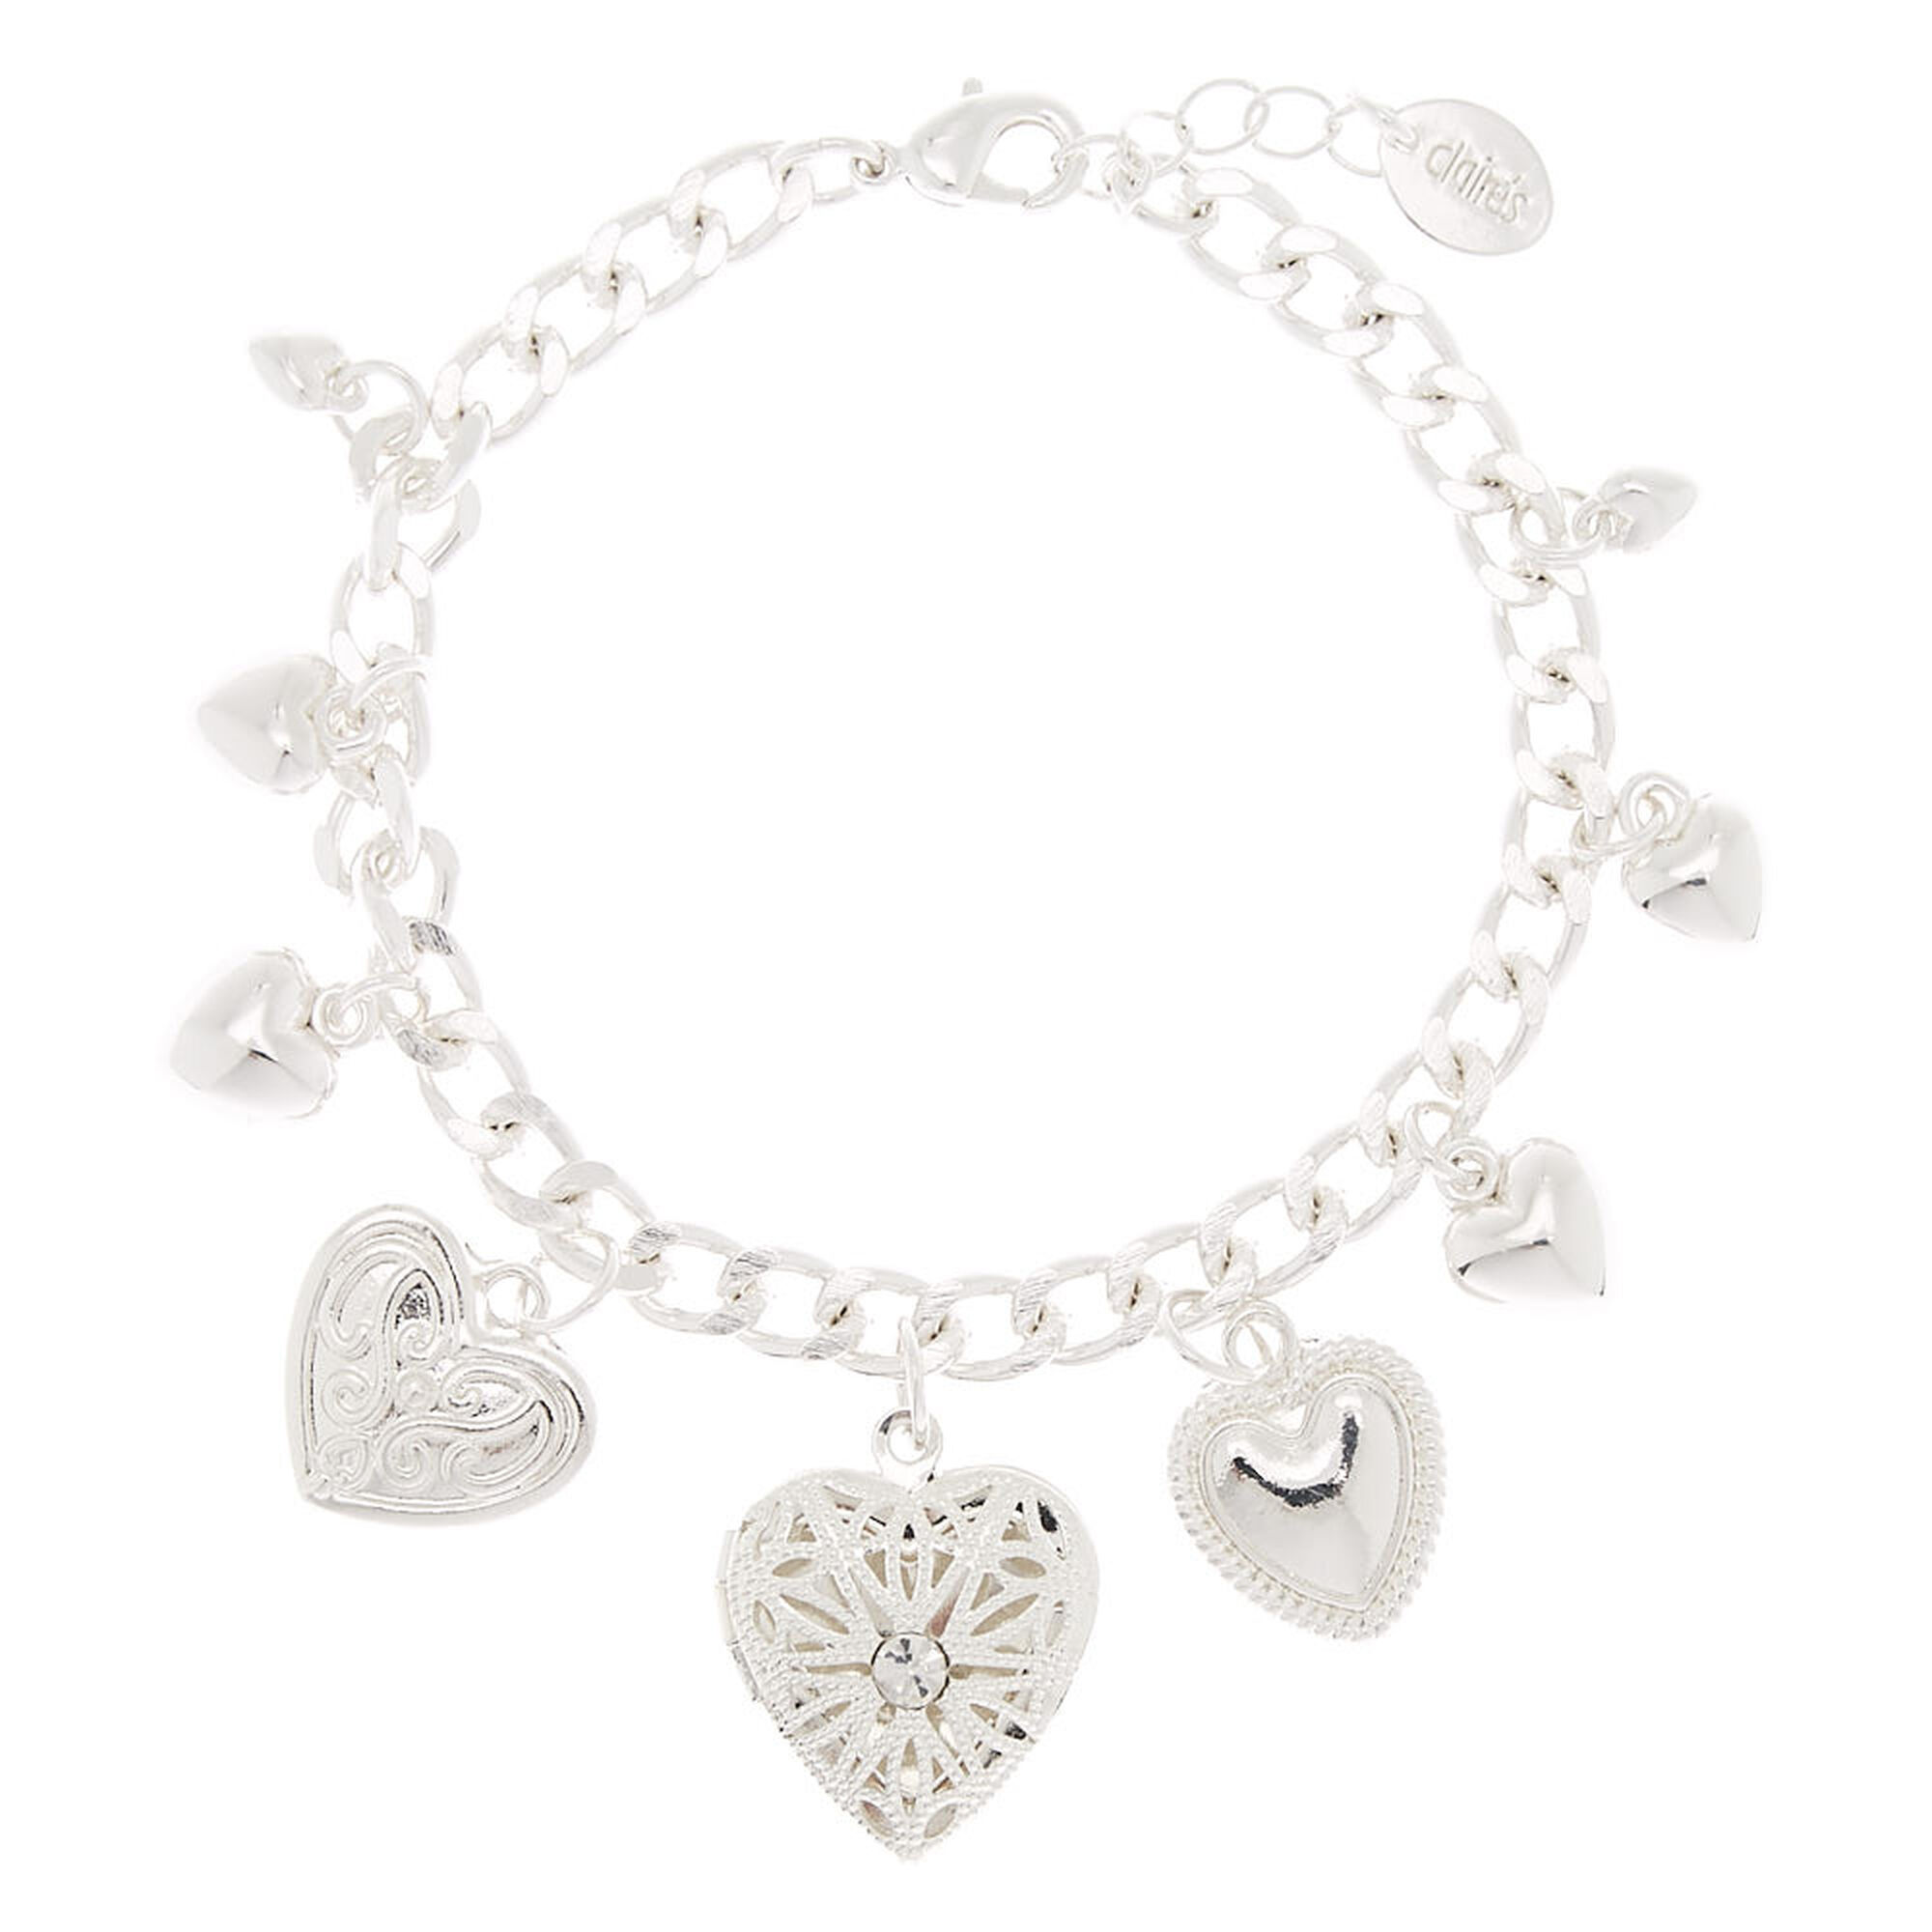 Silver Heart Locket Charm Bracelet